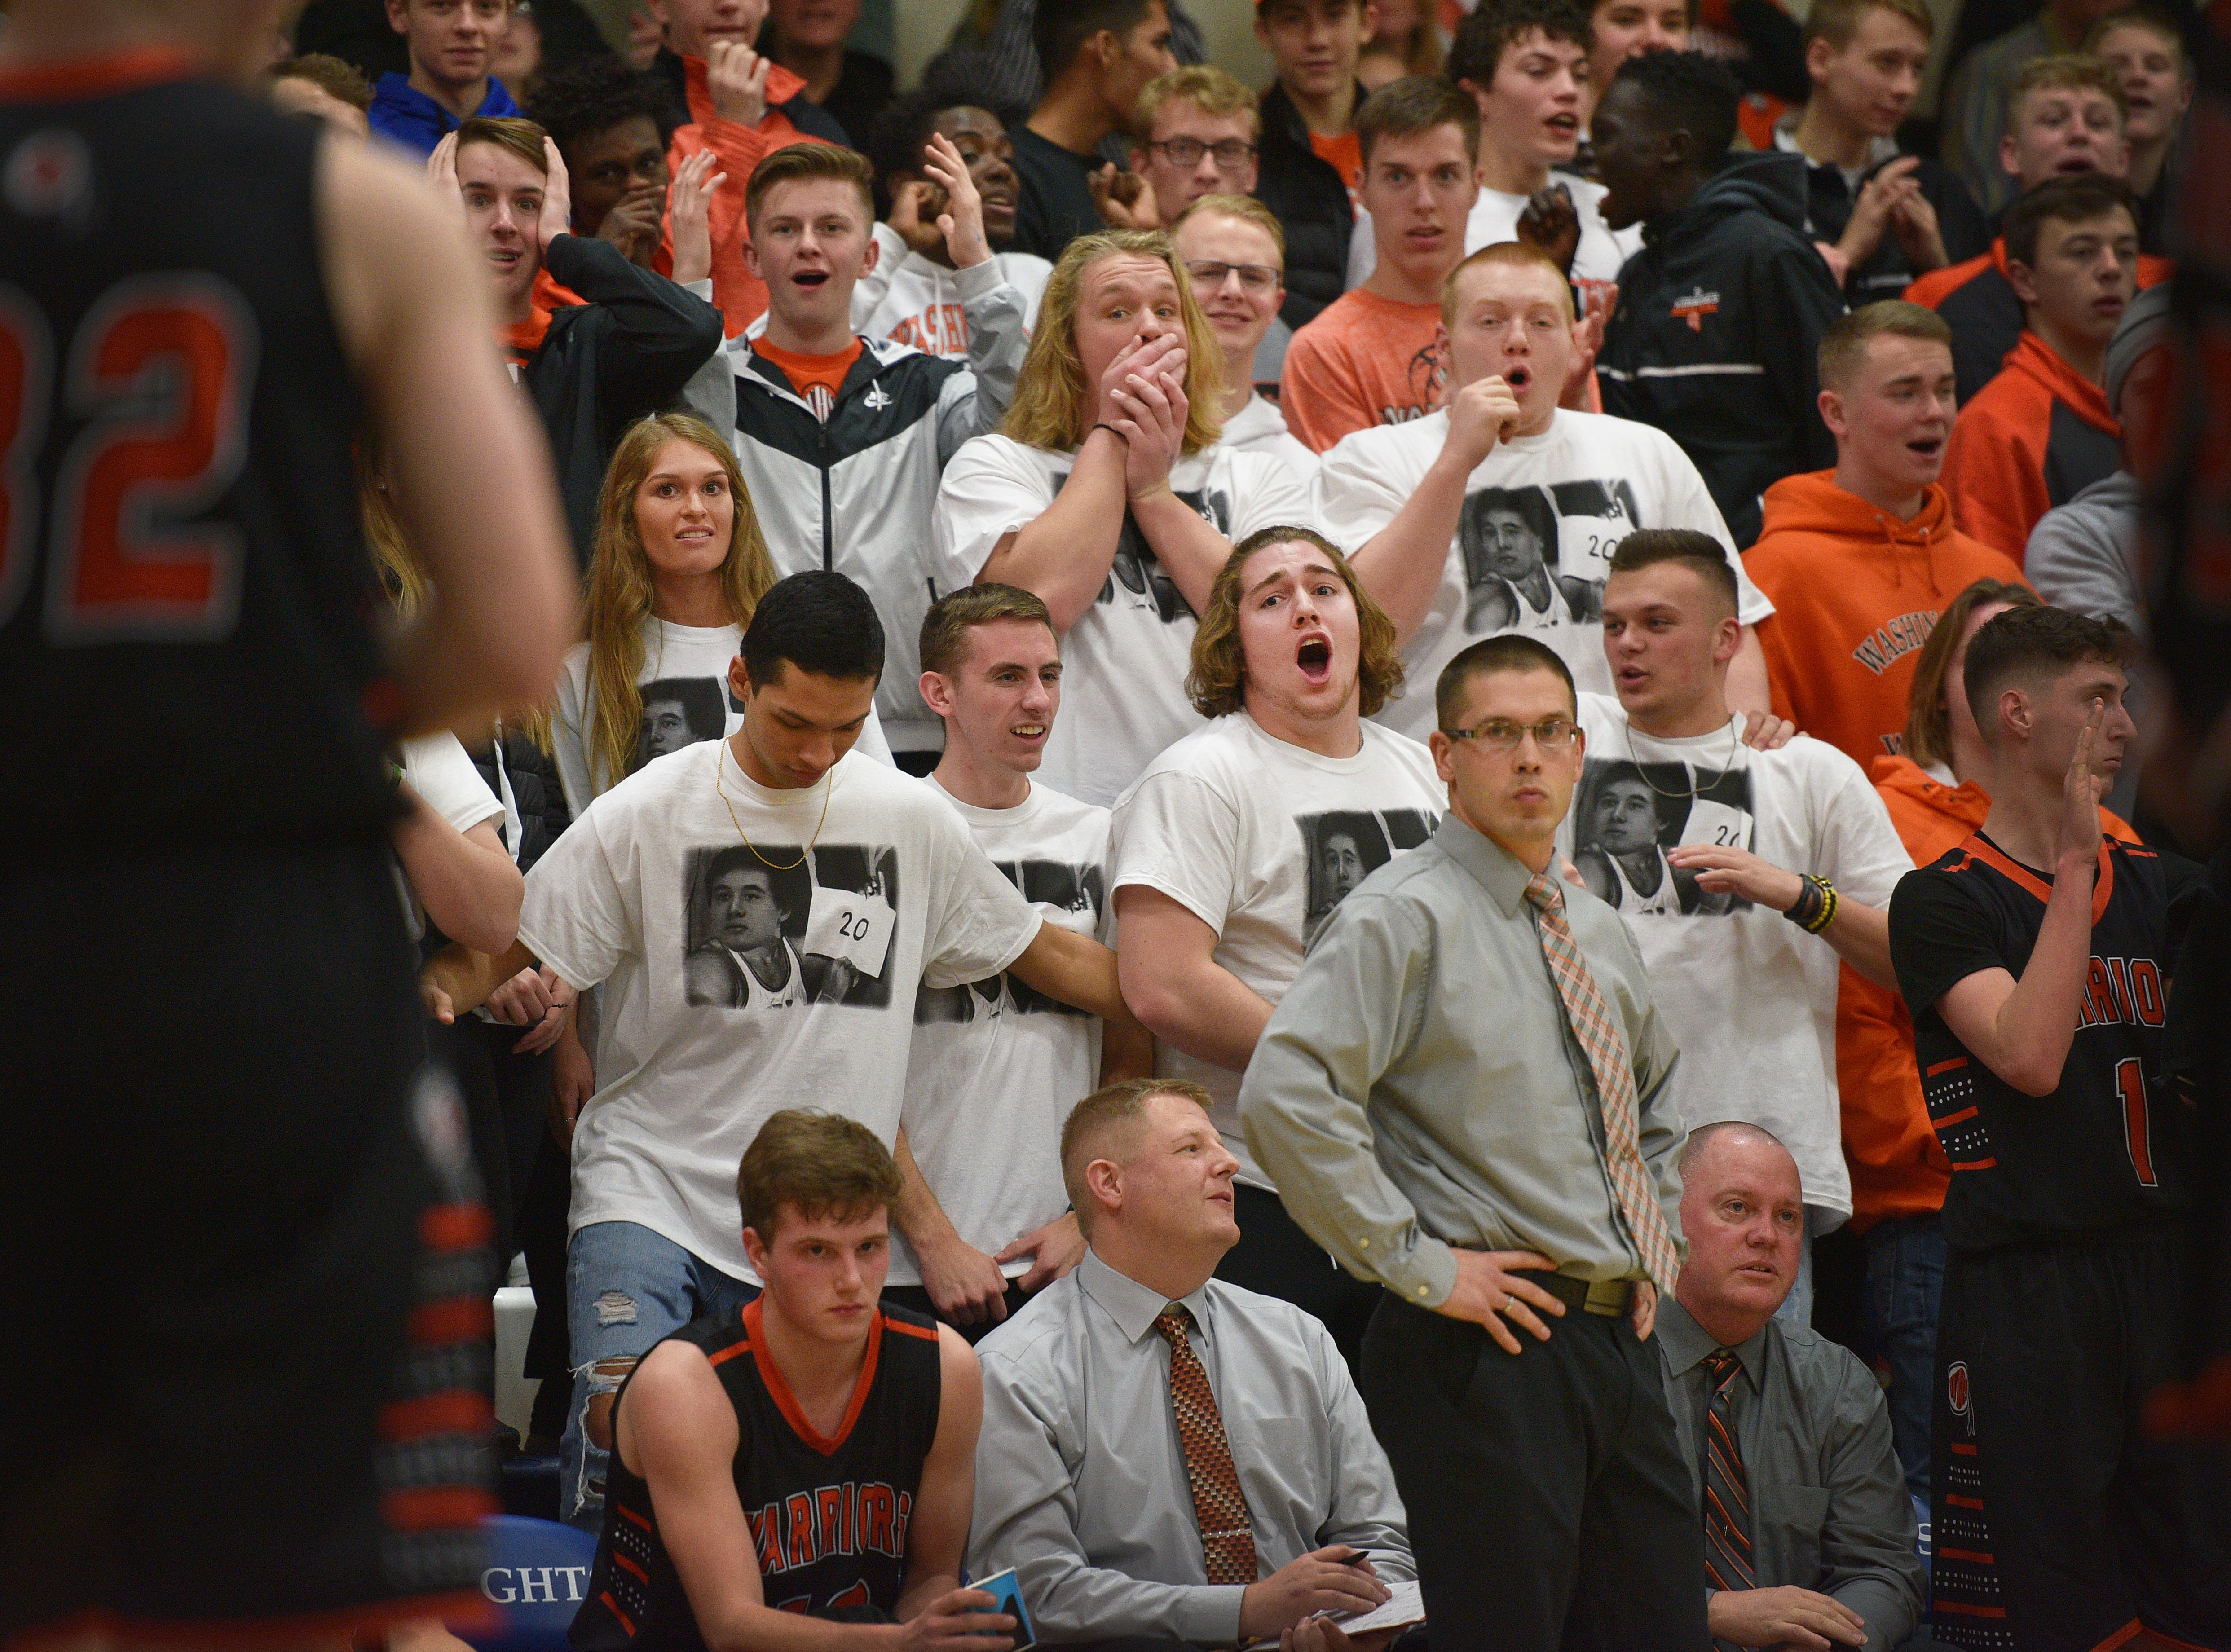 Washington's student section reacts after Ganin Thompson swats the ball from an O'Gorman player during the game Thursday, Jan. 10, at O'Gorman in Sioux Falls.